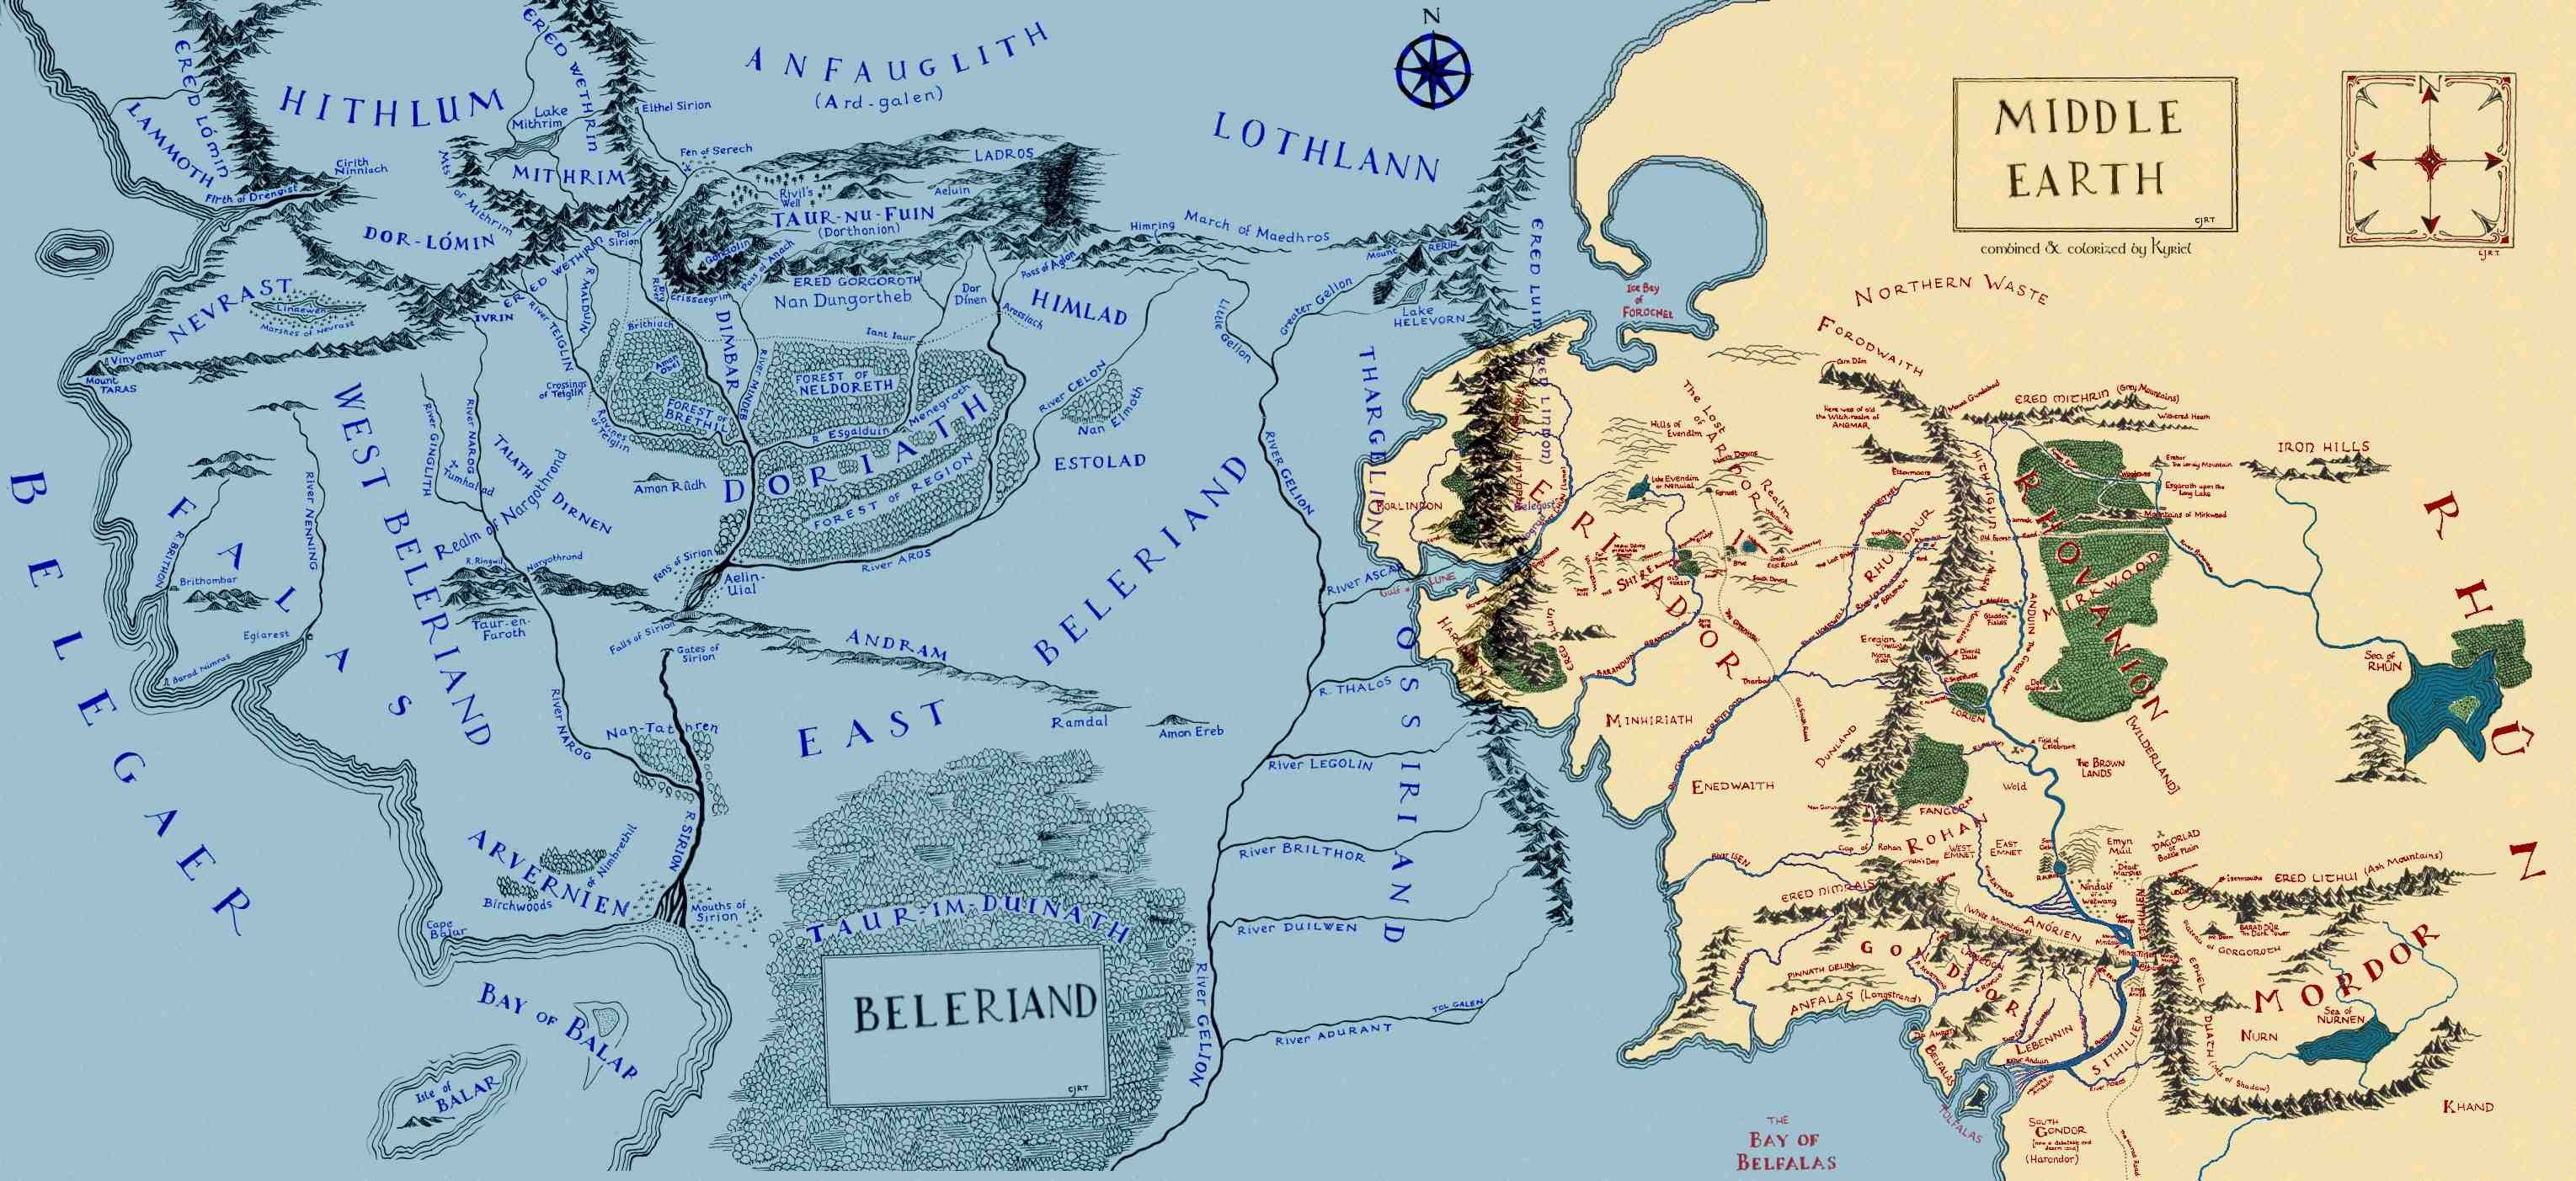 map of beleriand and the west of middle earth maps by christopher tolkien blue color indicates regions of beleriand lost at the end of the first age